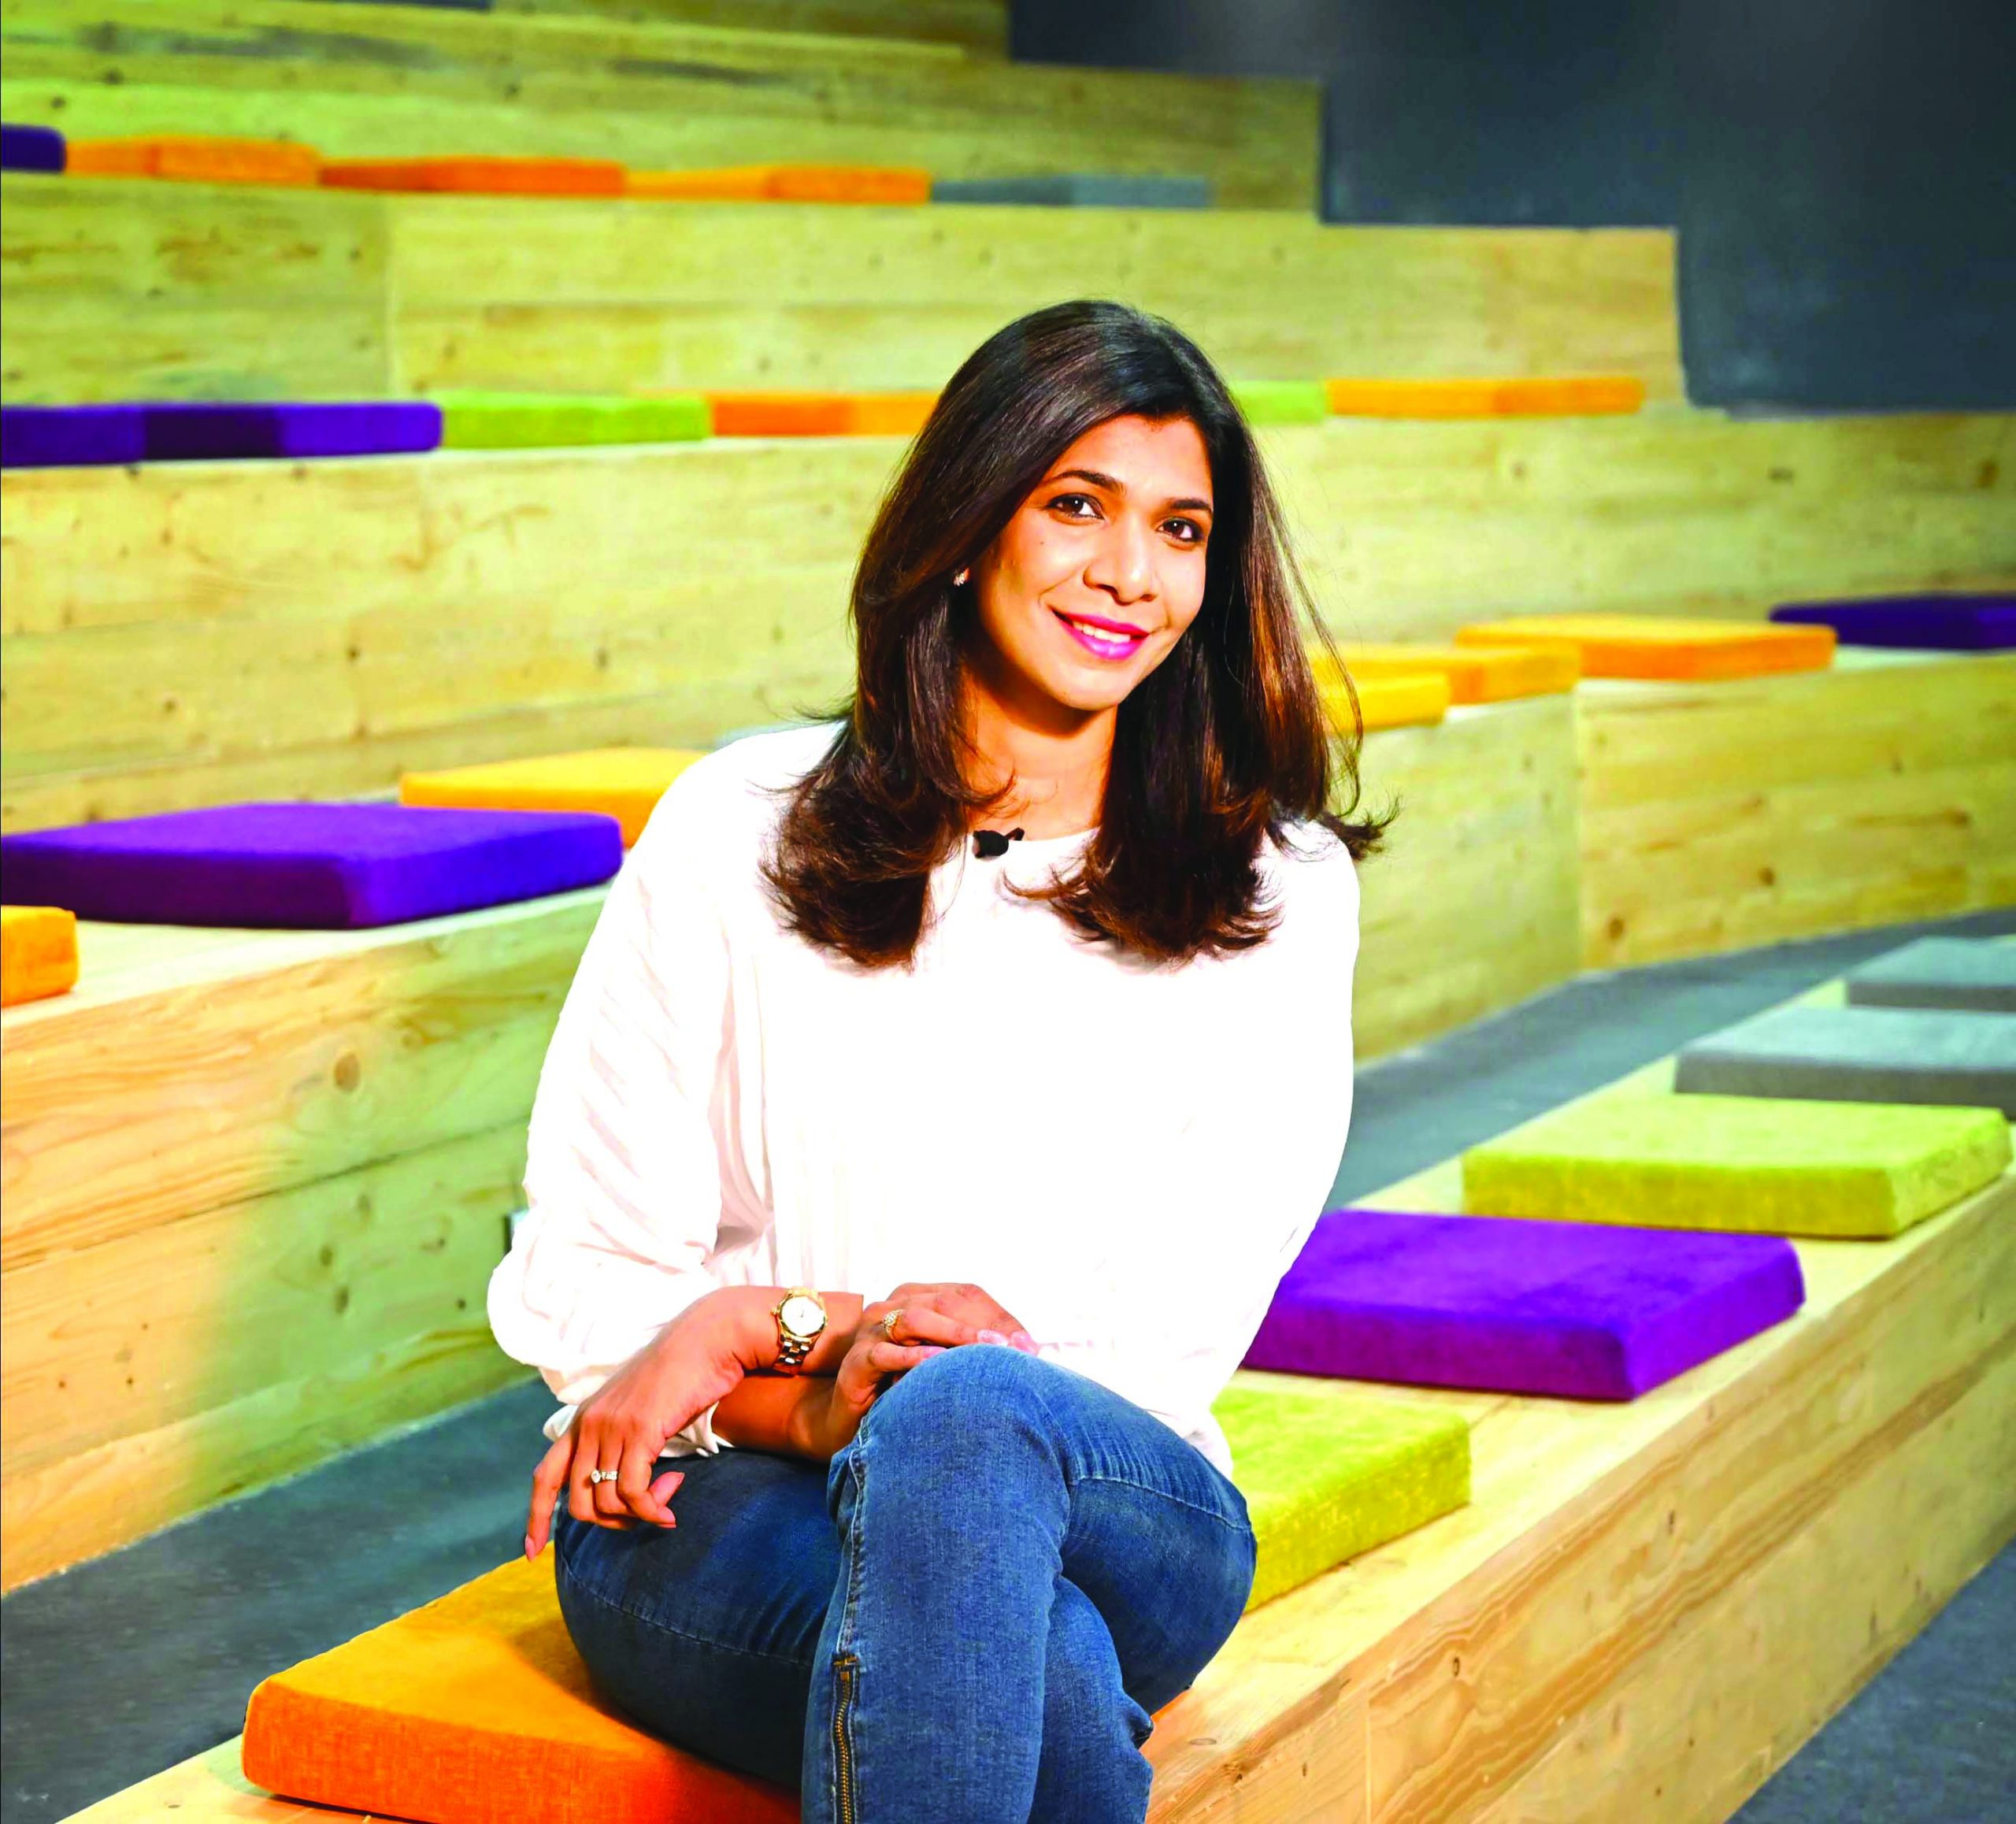 Dr-Pallavi-Rao-Chaturvedi-Executive-VP-AISECT-Group-Founder-Brainy-Bear-Pre-Schools-Founding-President-EO-Bhopal-Chapter